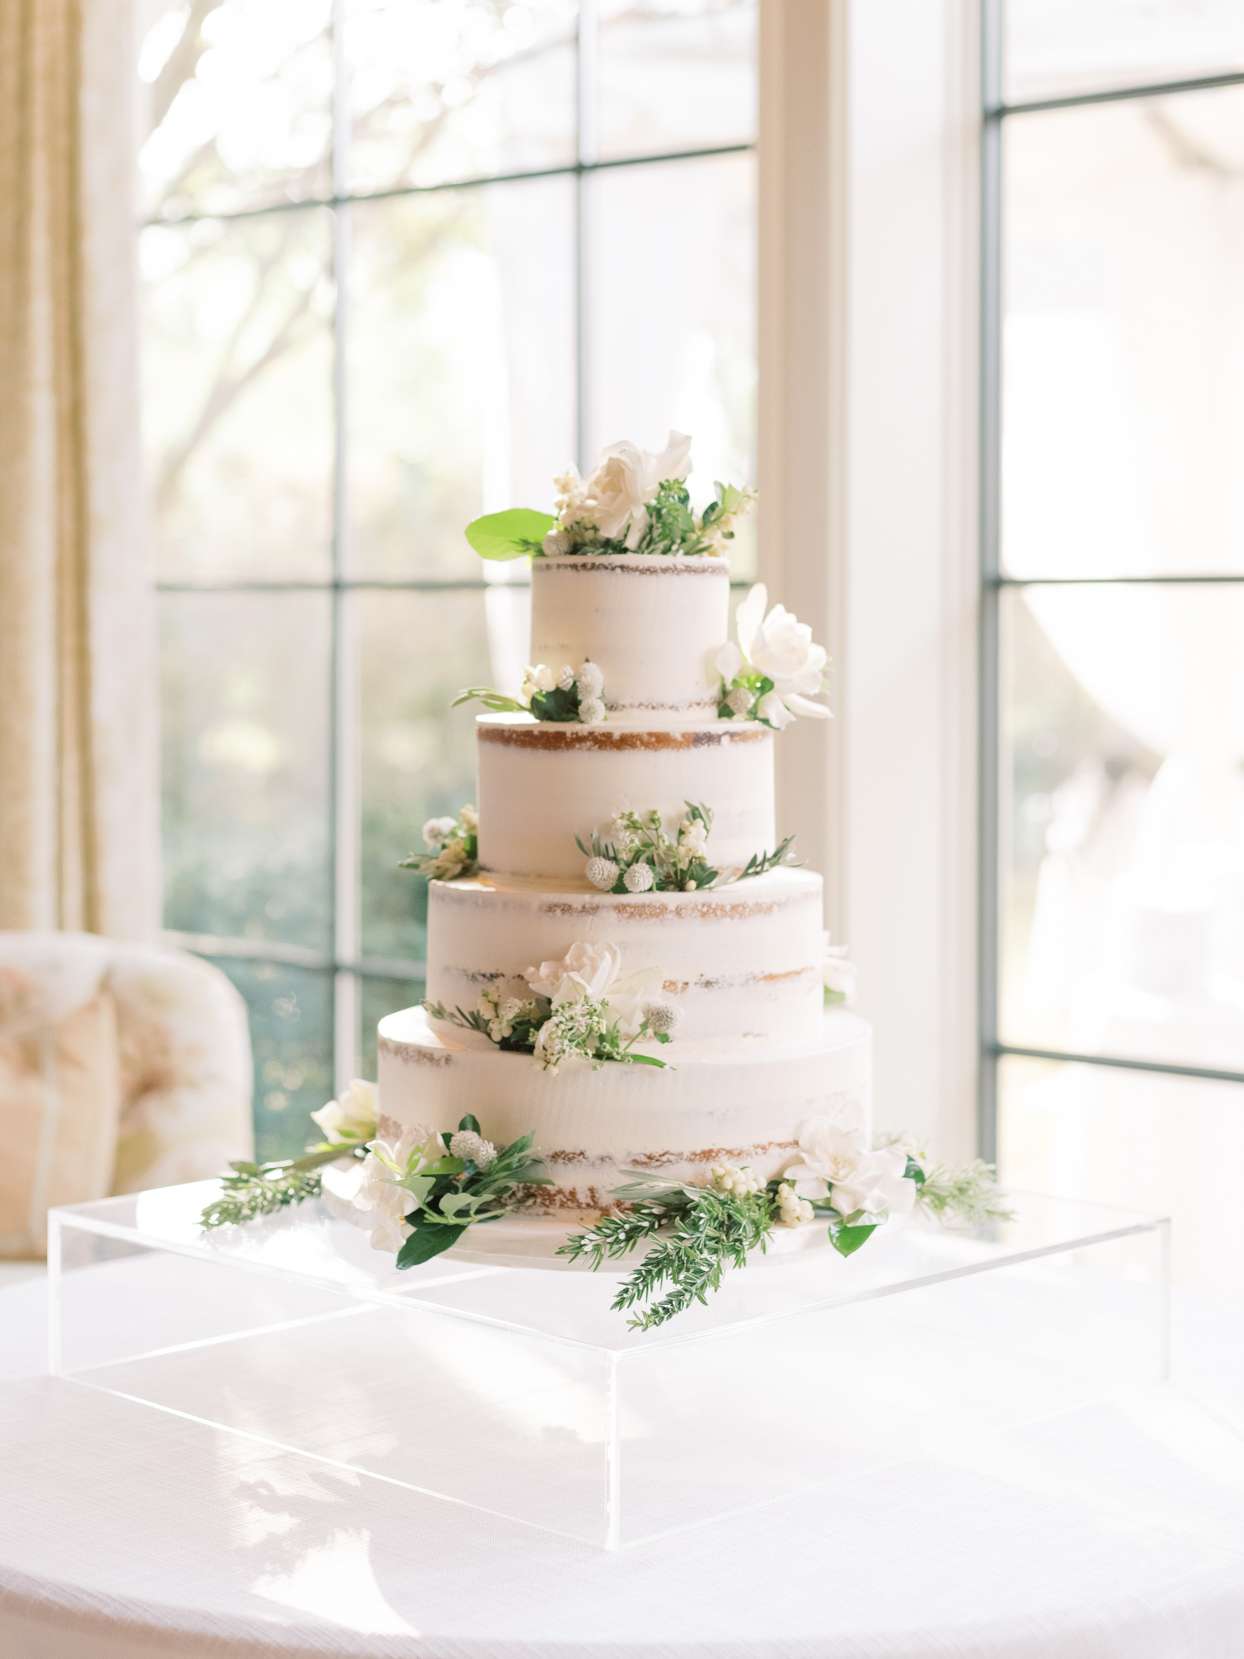 simple partially naked wedding cake with white flowers and greenery decor